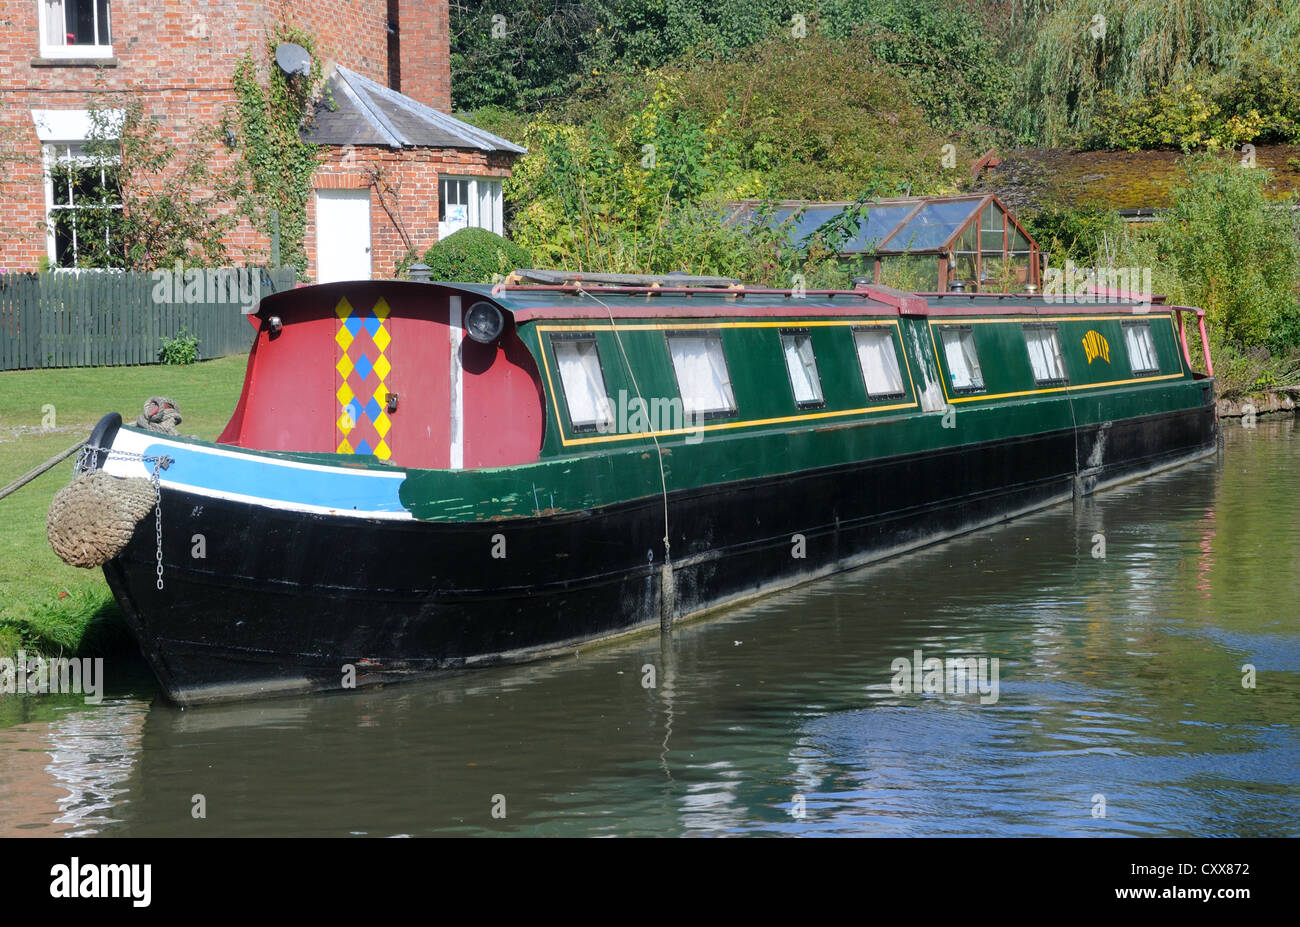 70' narrowboat 'Bunyip' moored on the Oxford Canal at Cropredy, Oxfordshire, England - Stock Image